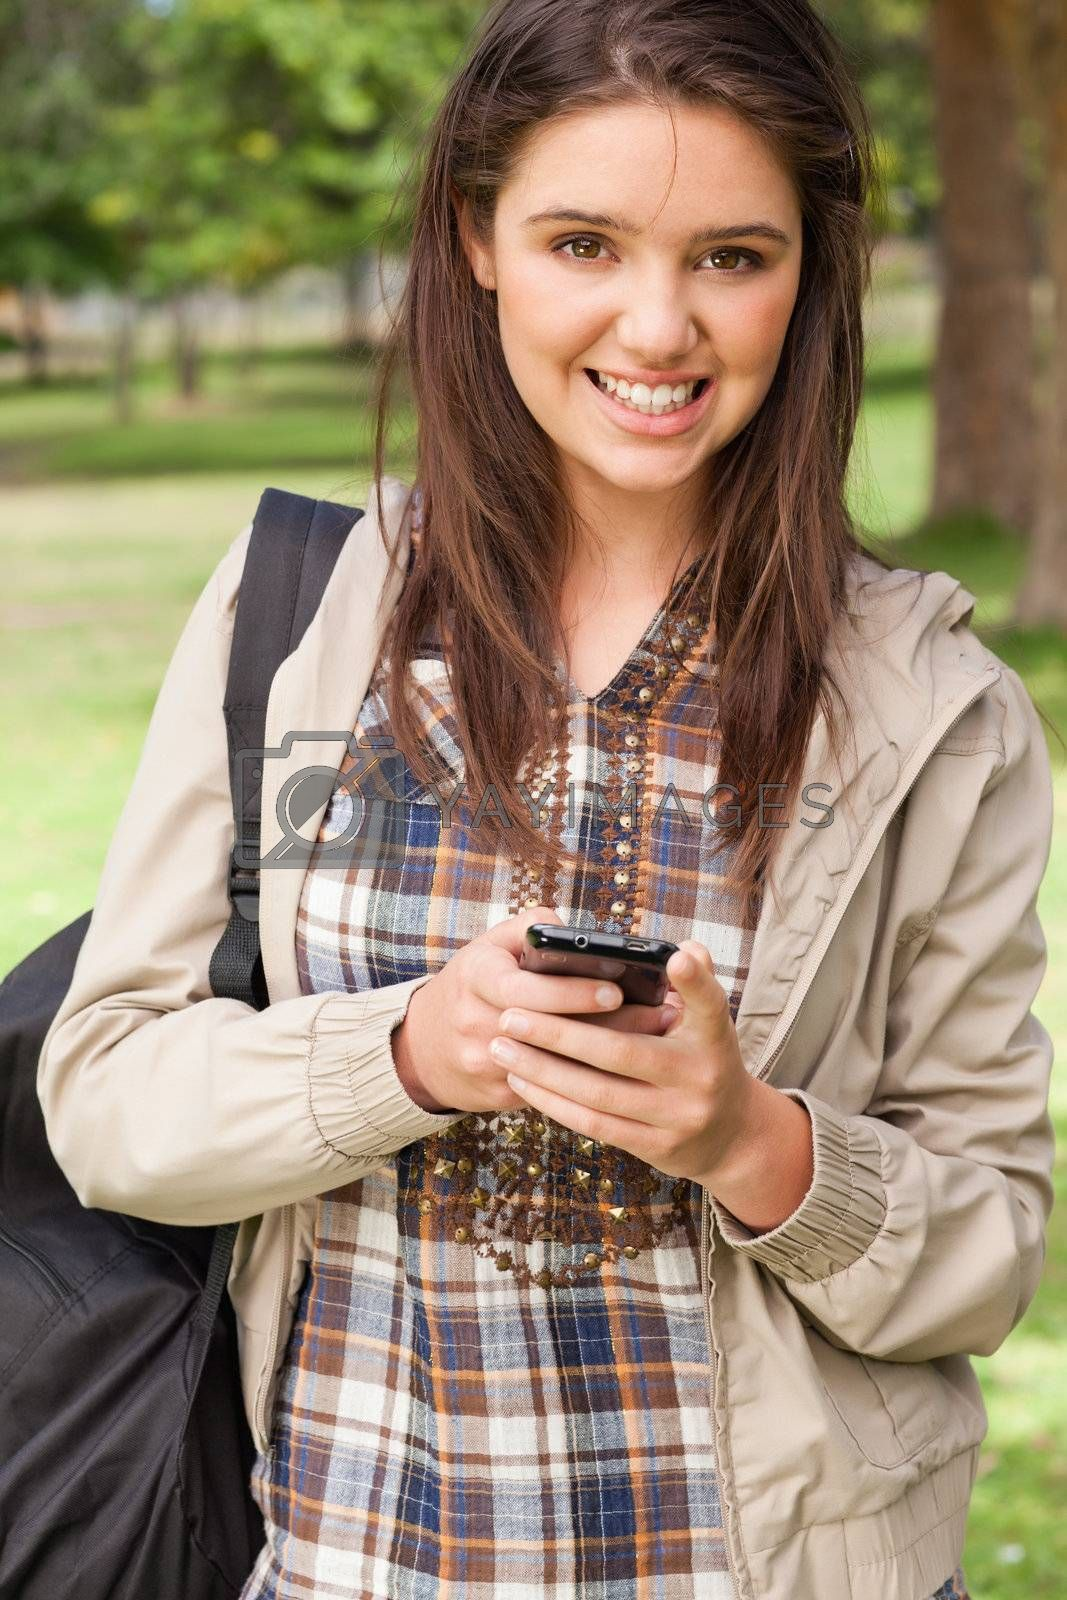 Portrait of a young student using a smartphone in a park